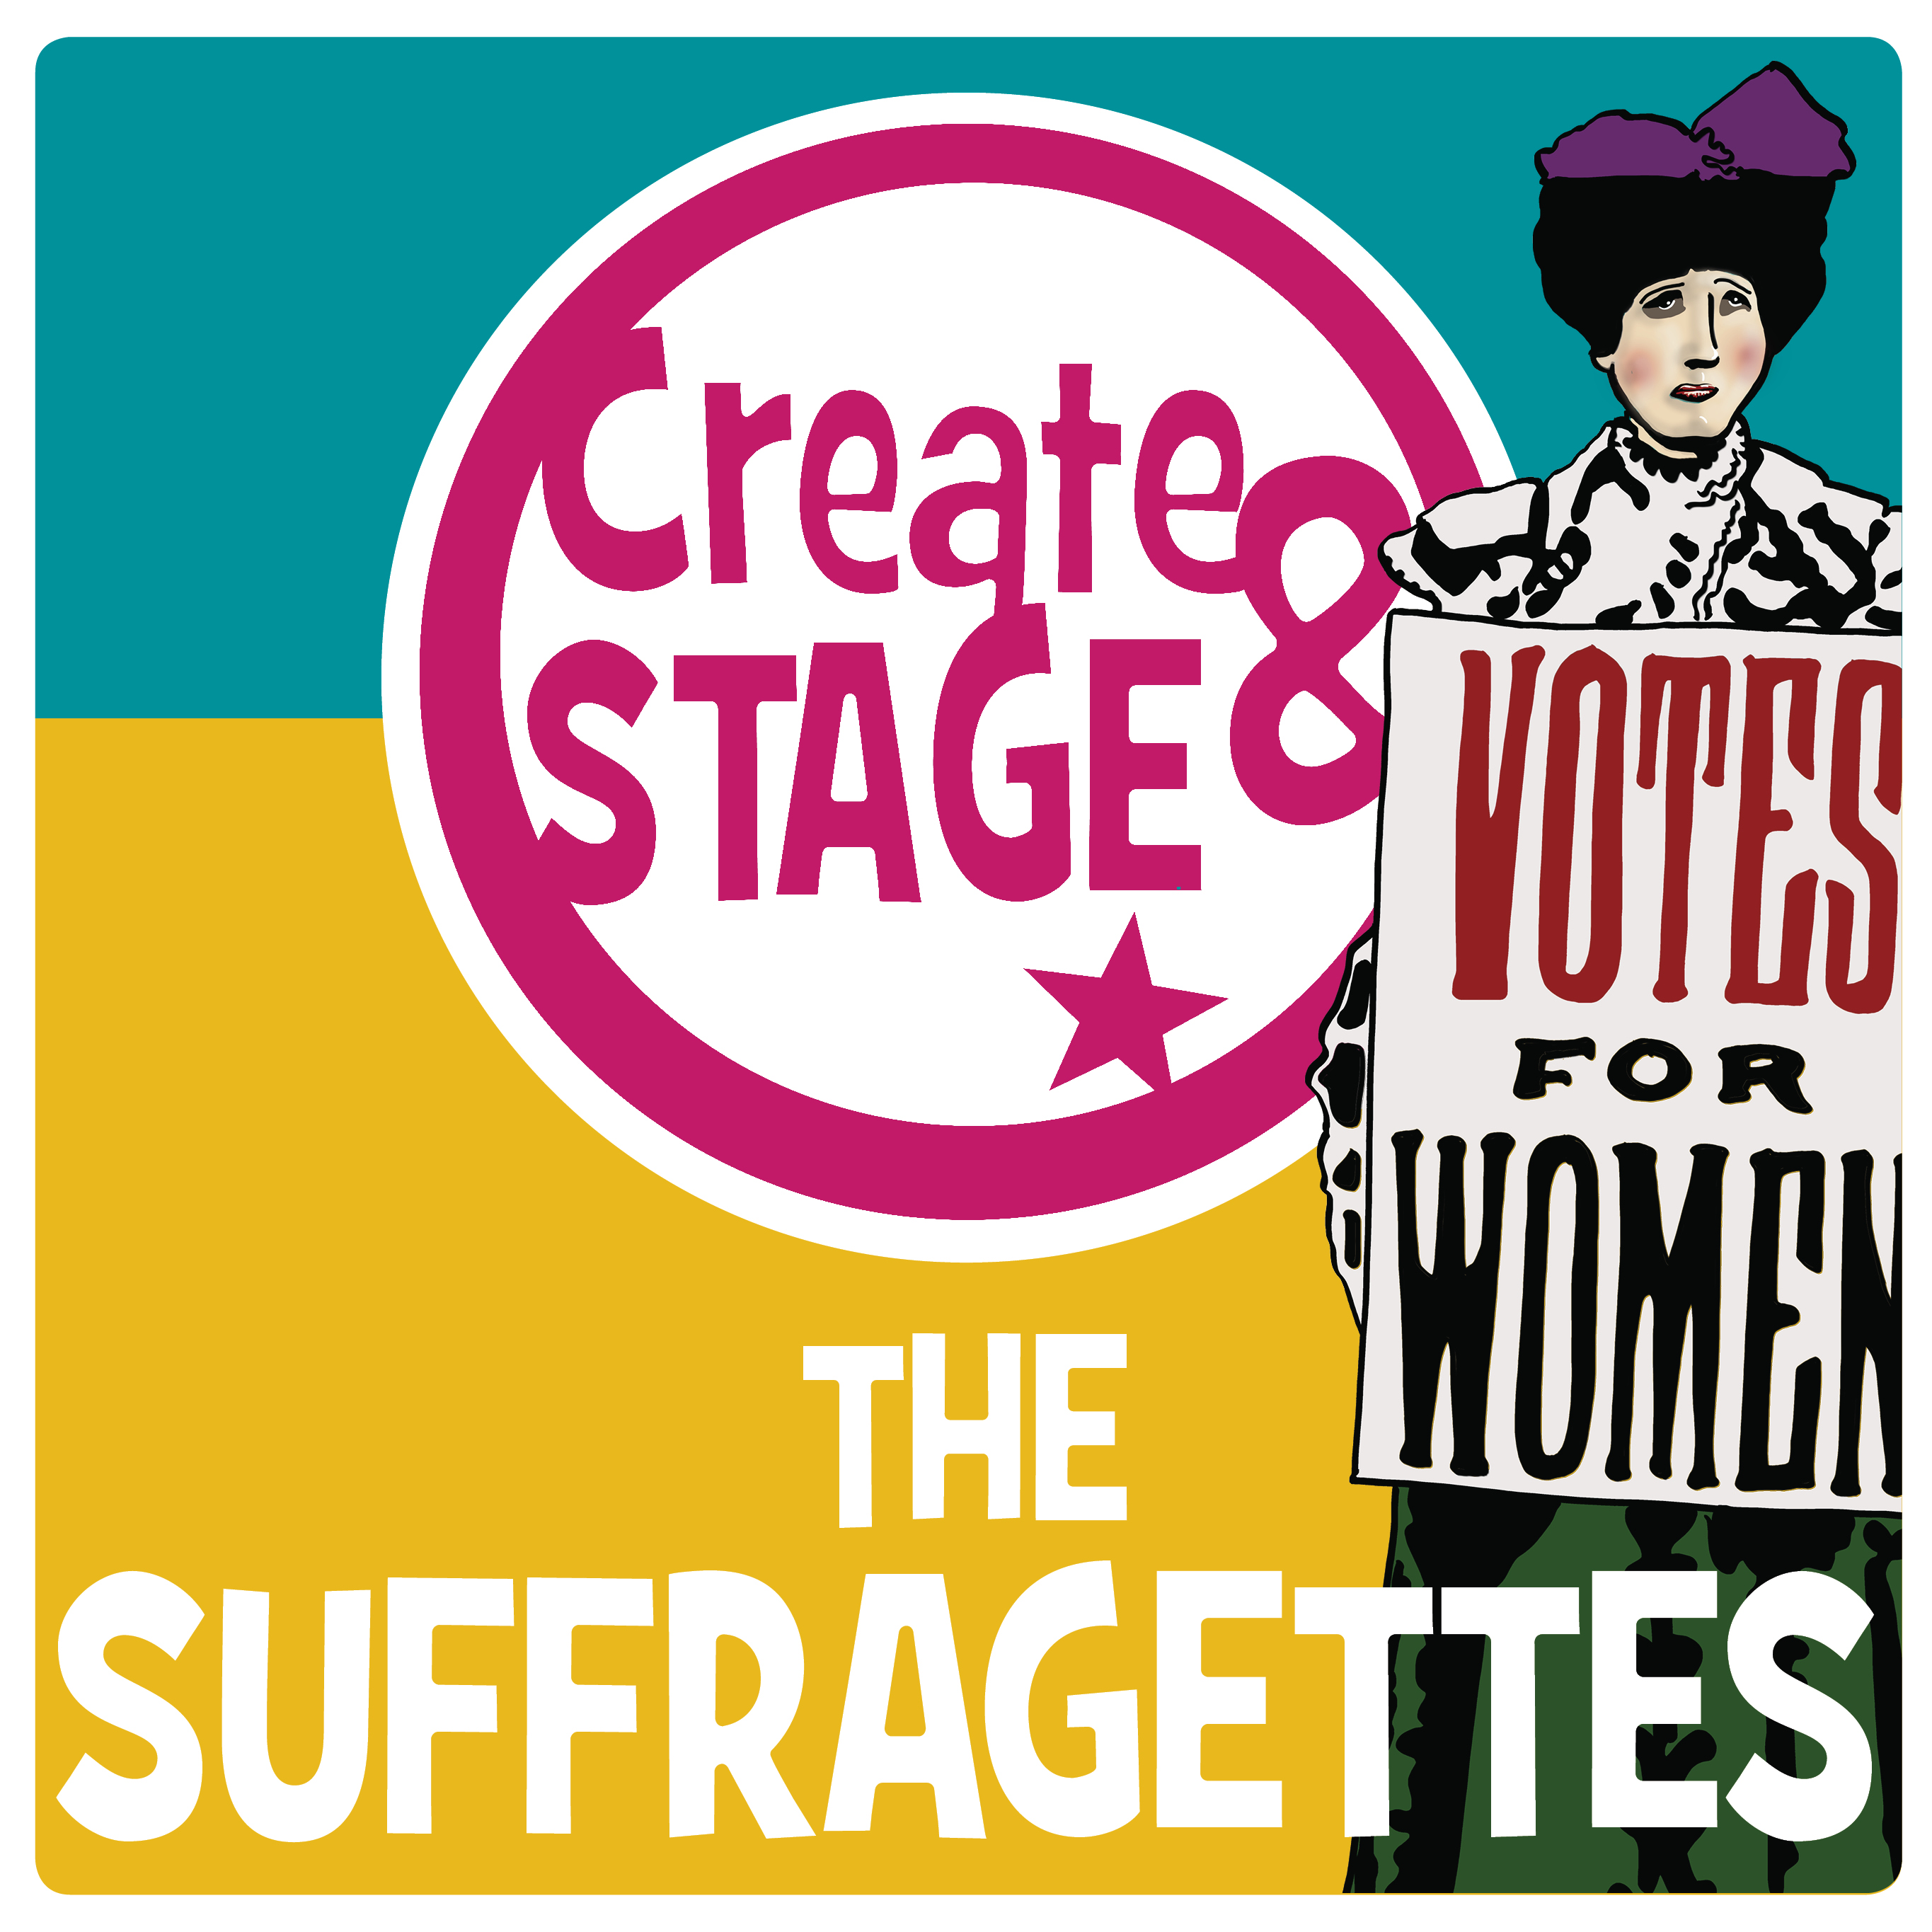 Create and Stage the Suffragettes school workshop for KS2. Explore the Suffrage movement through a drama workshop.